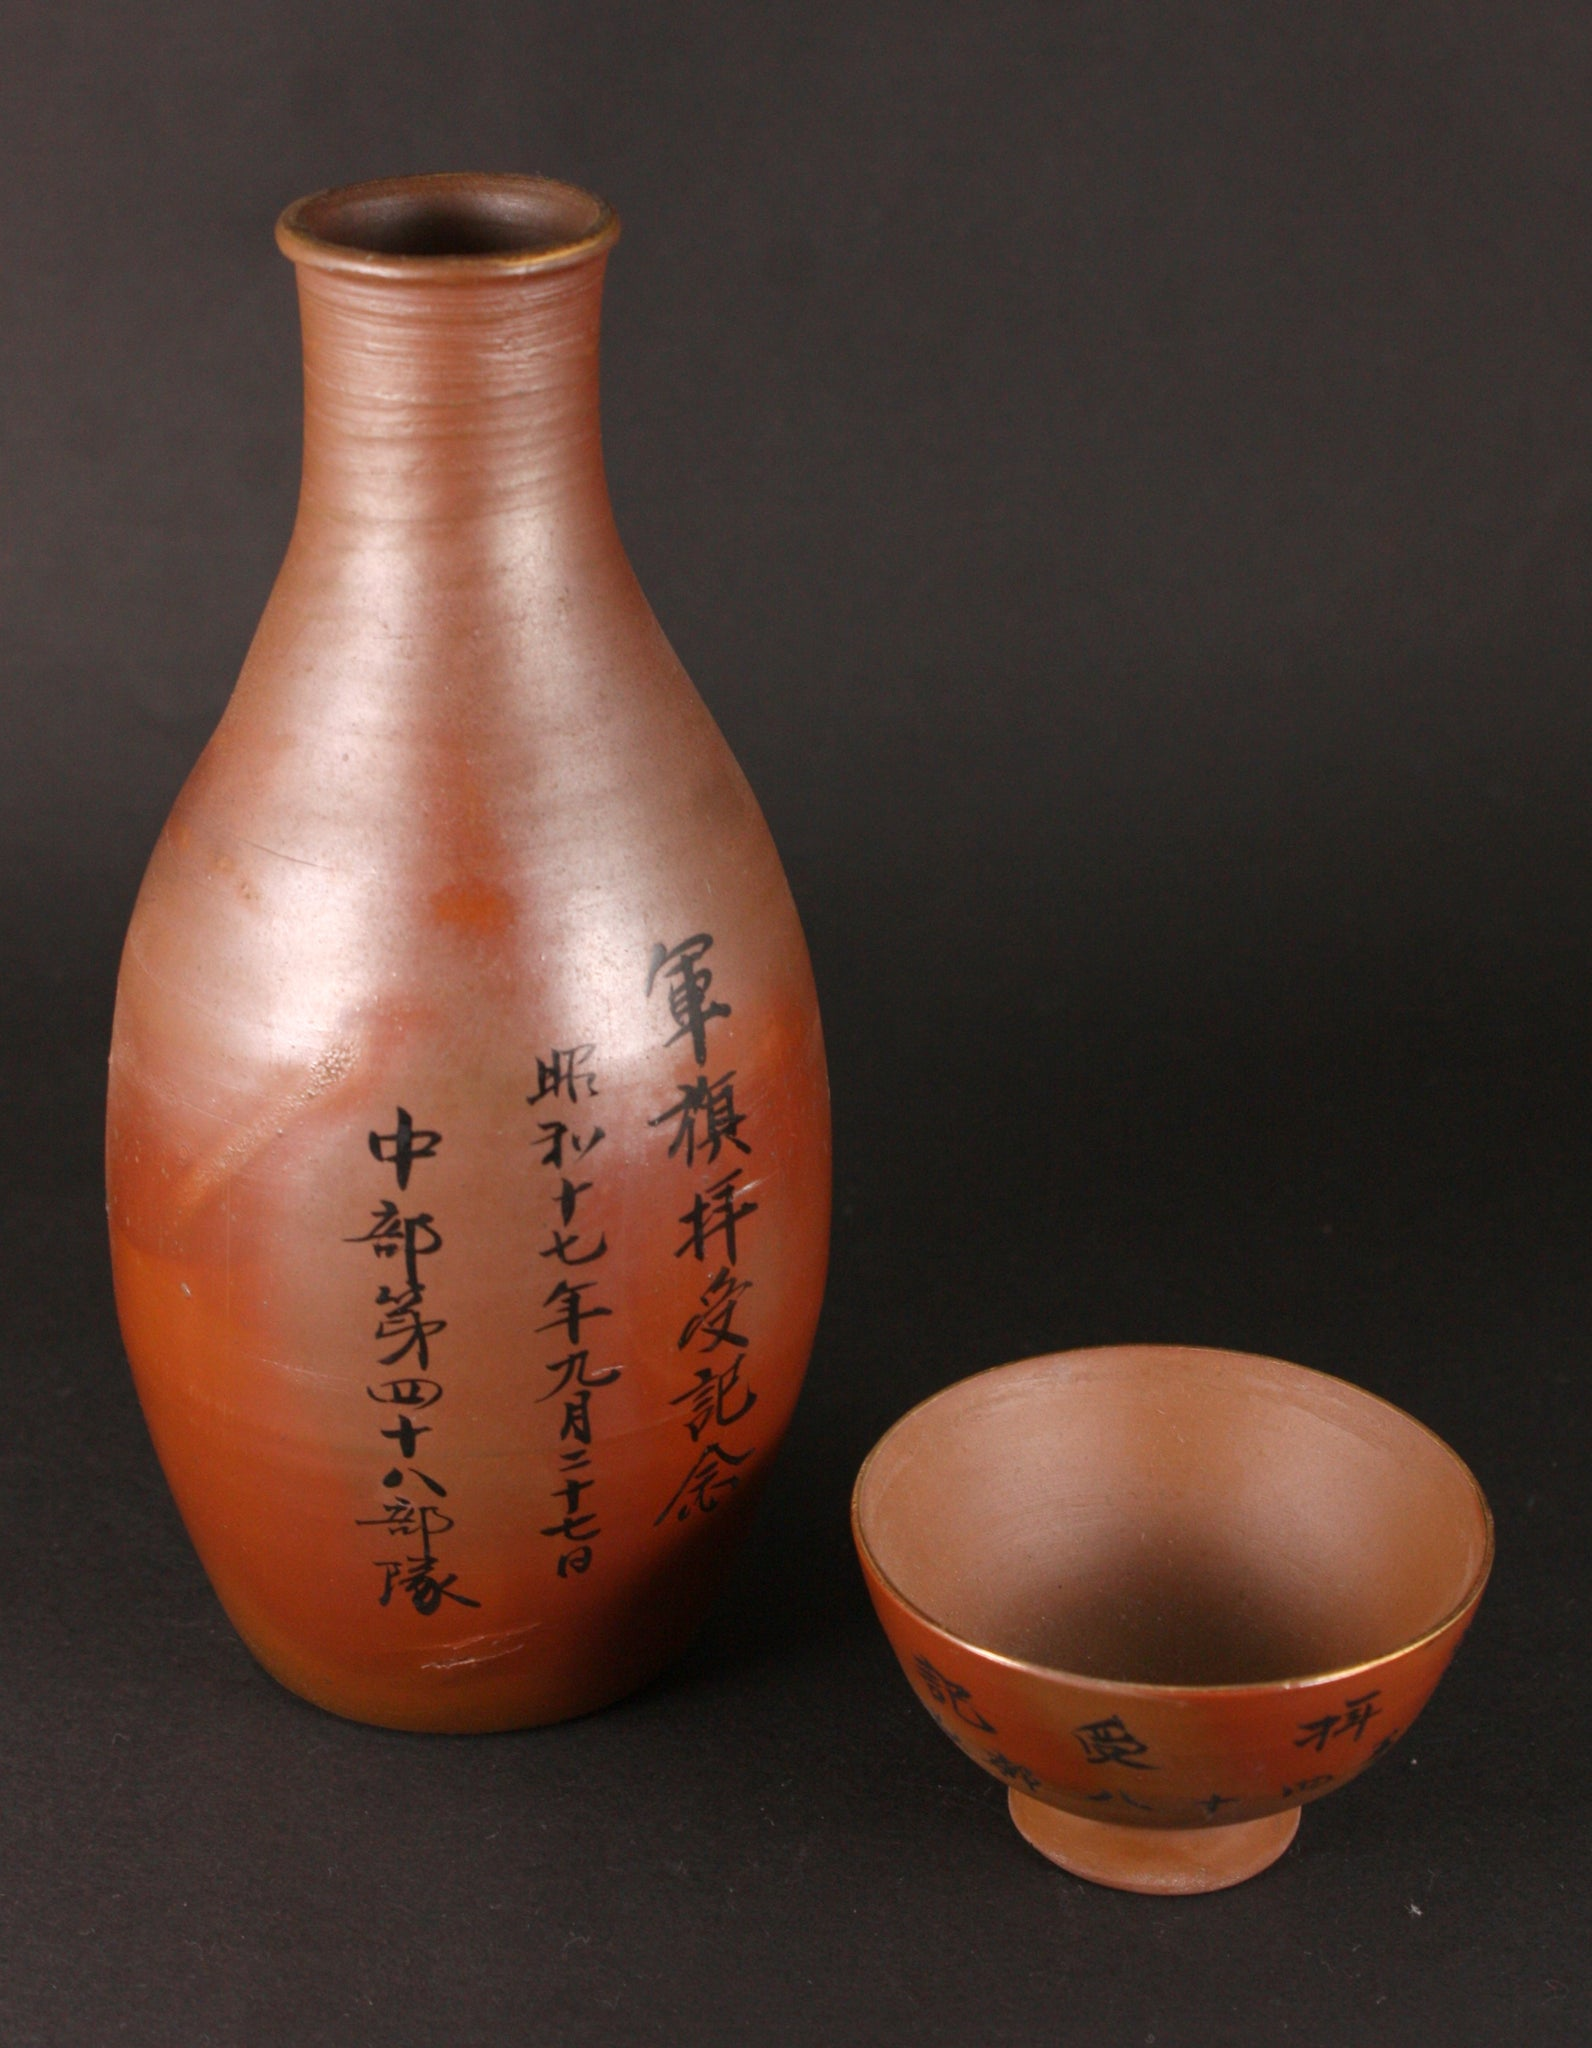 Antique Japanese 1942 WW2 Regimental Banner Bizen-ware Army Sake Bottle and Cup